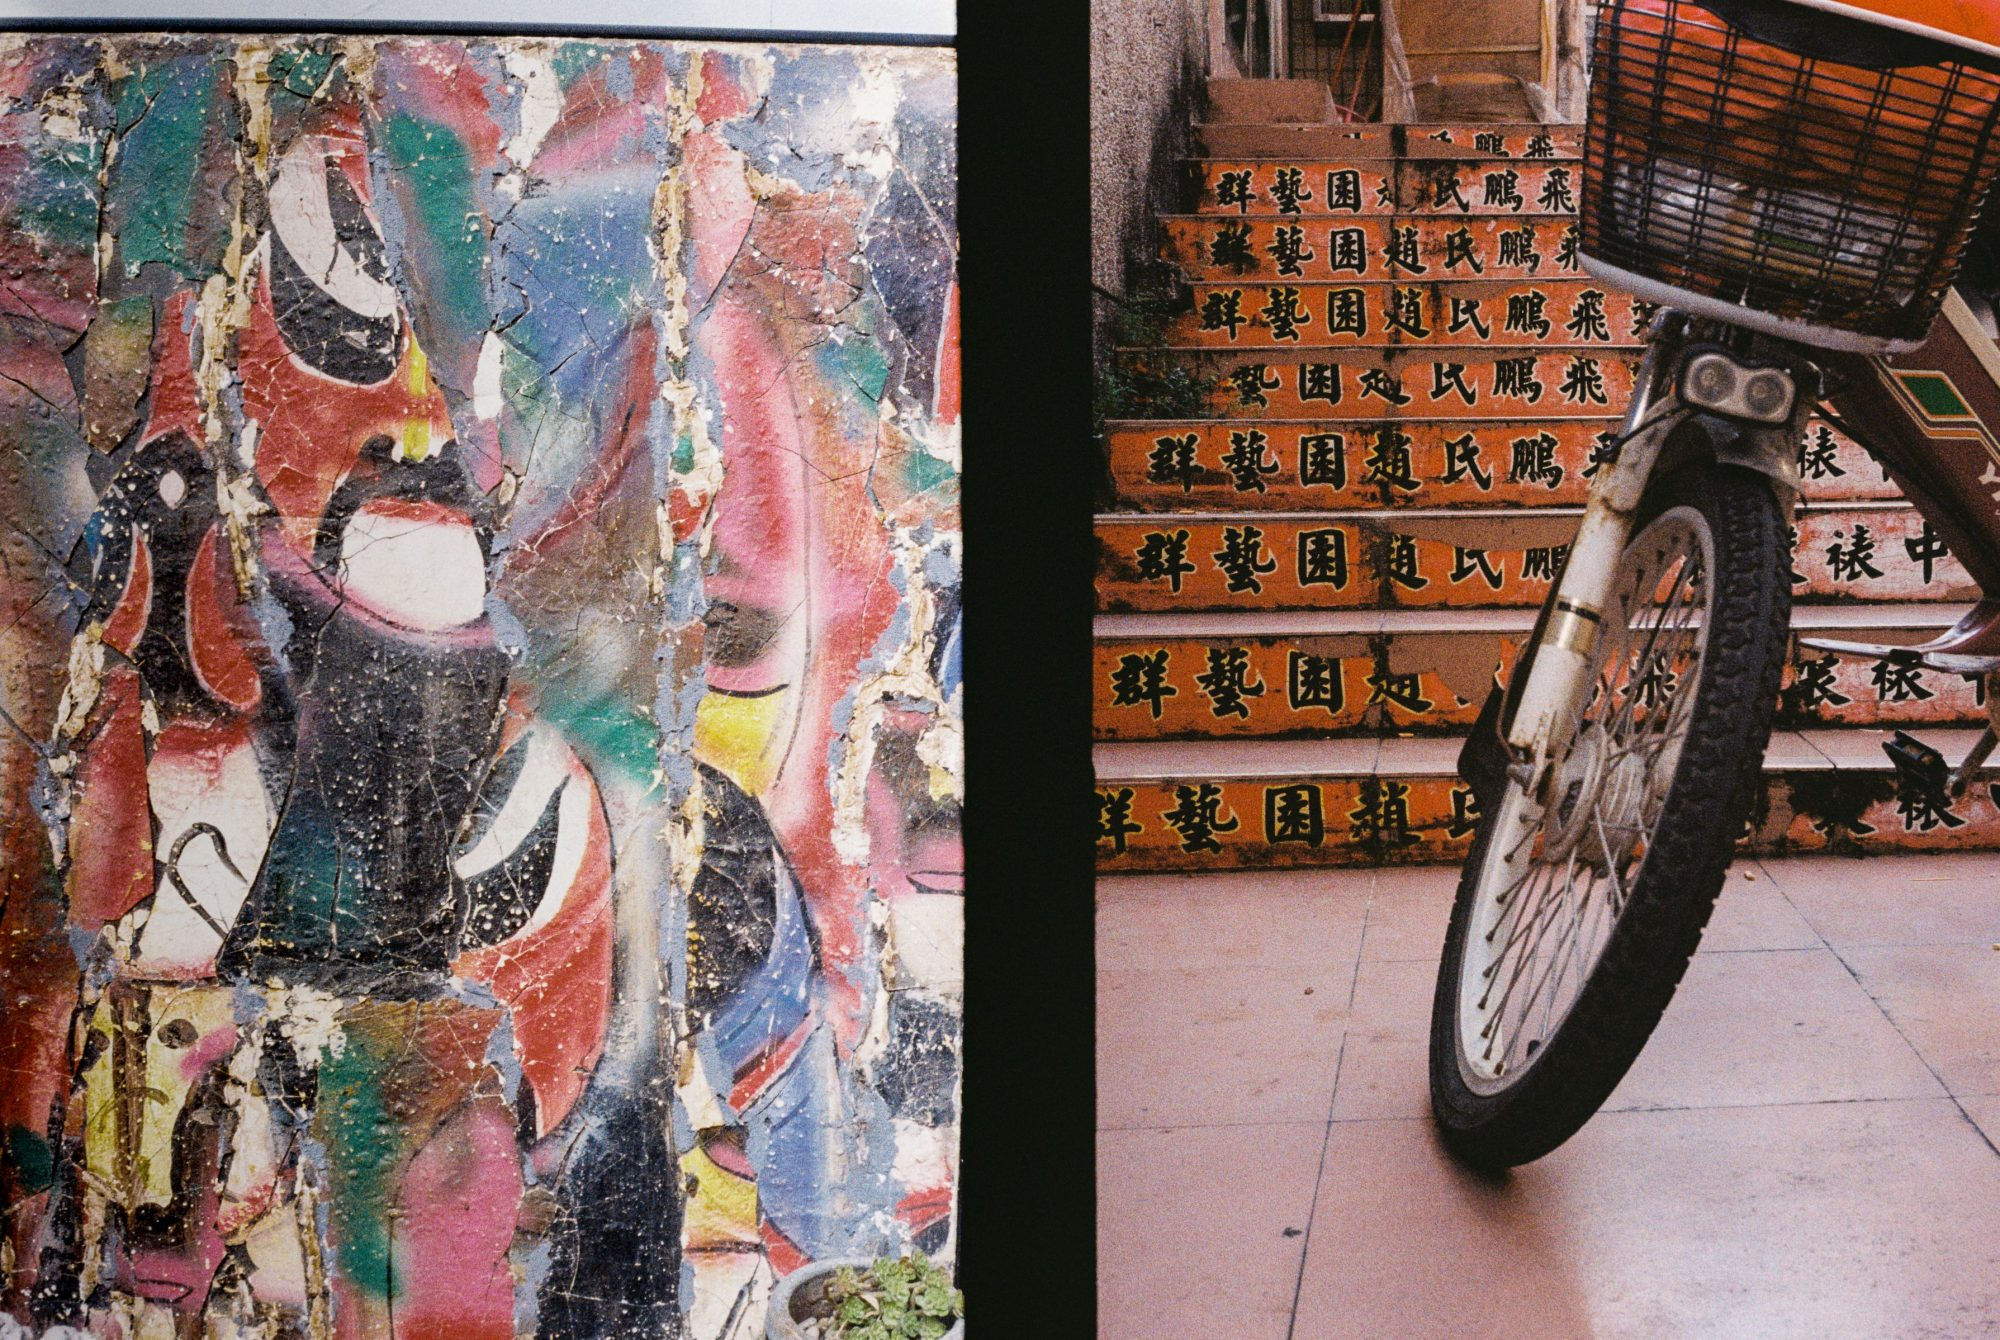 Mural and bike near stairs (Pic: Jay SE1)